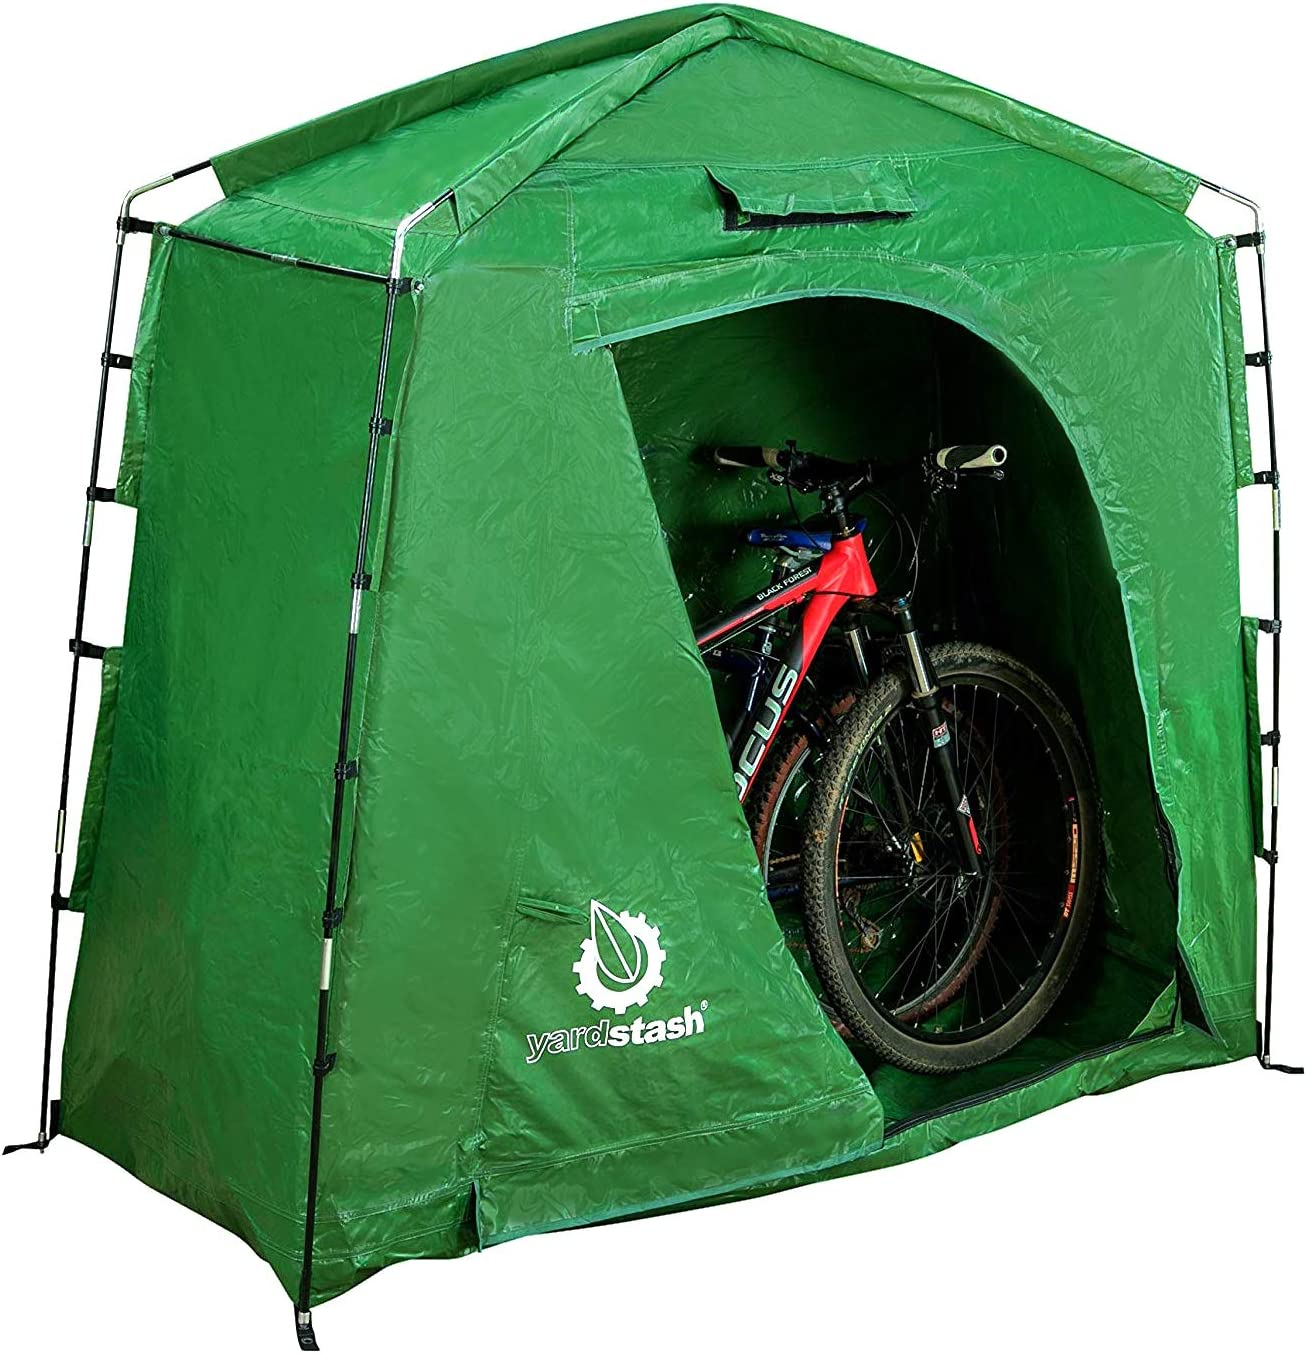 The YardStash IV Heavy Duty, Space Saving Outdoor Storage Shed Tent